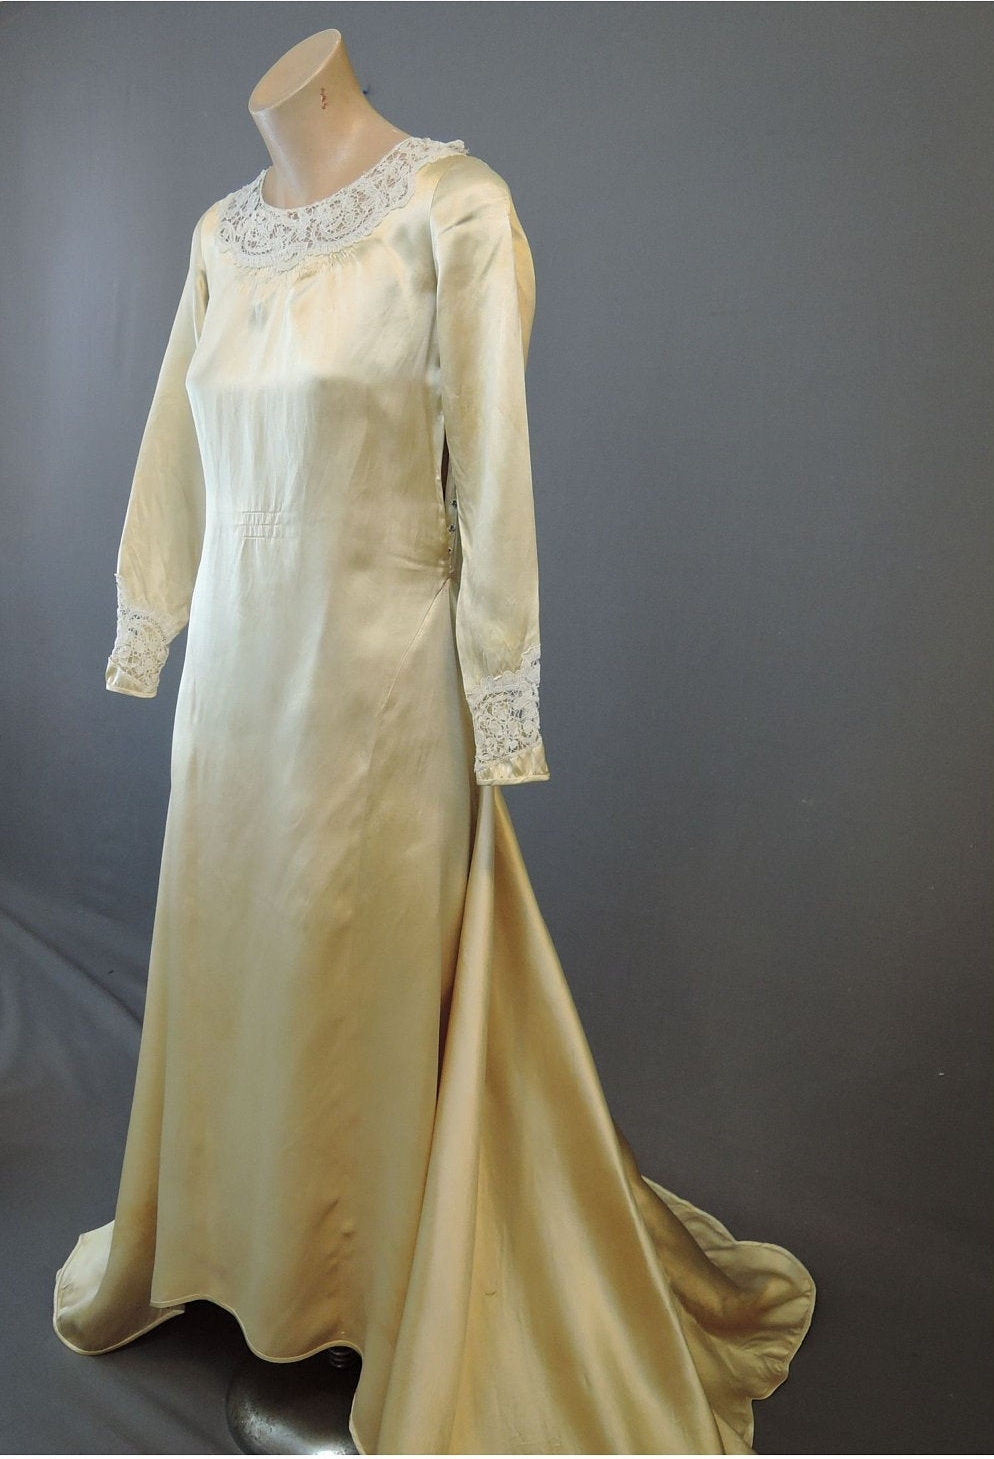 Vintage 1920s Ivory Satin Wedding Gown, 32 inch bust Antique Dress with issues